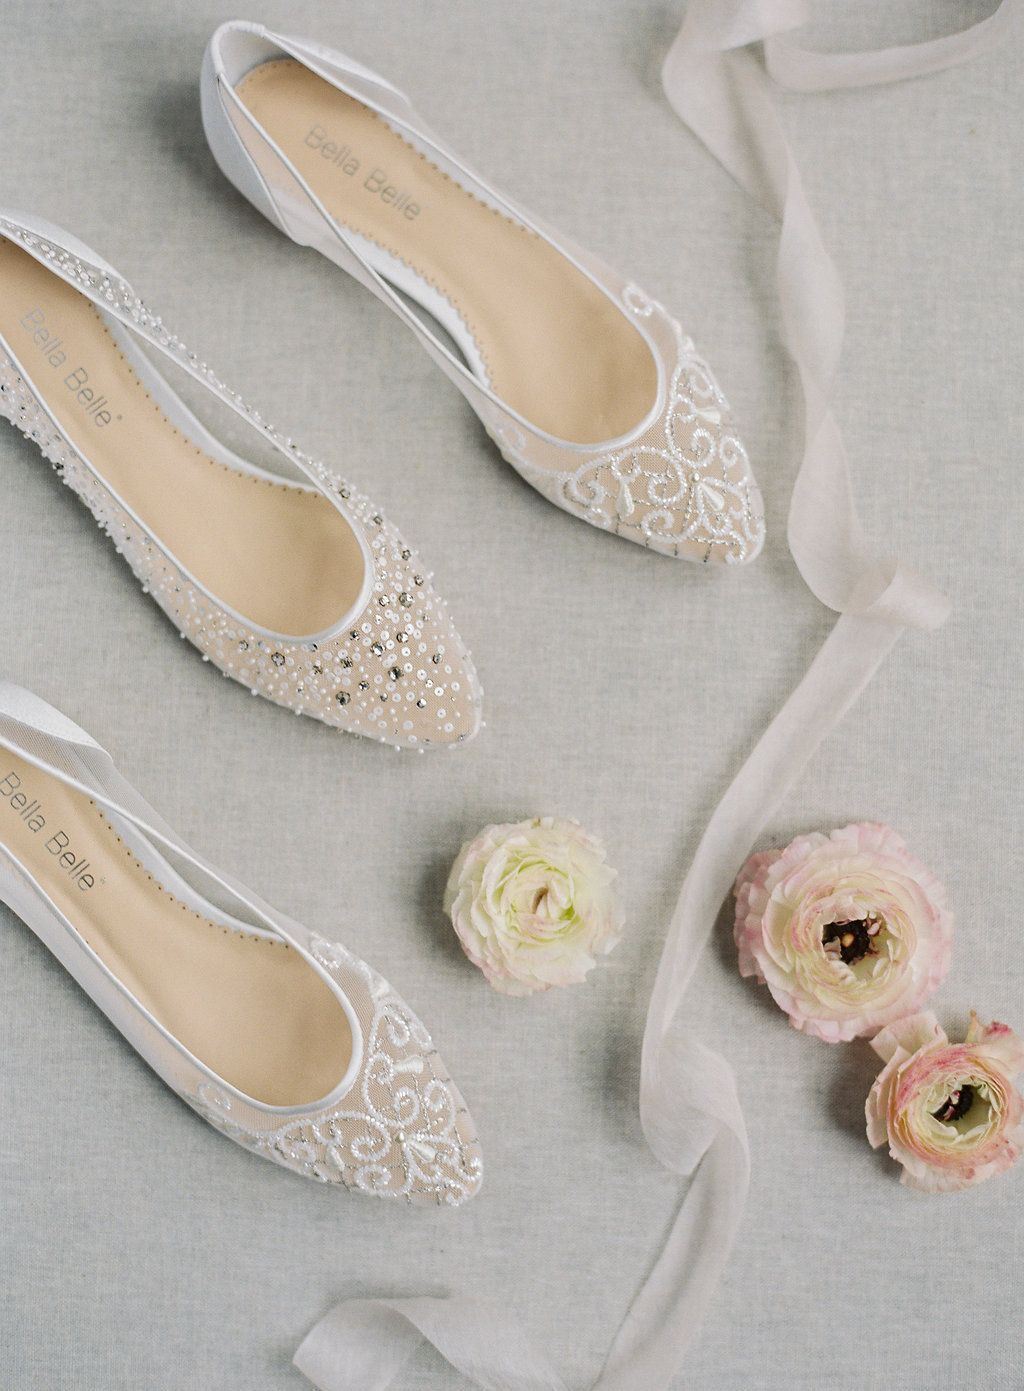 06bedbb0039d0e Bella Belle ivory wedding flats Ariel and Louisa are comfortable with the  extra padding and super chic and stylish with the sparkly crystal  embellishment ...